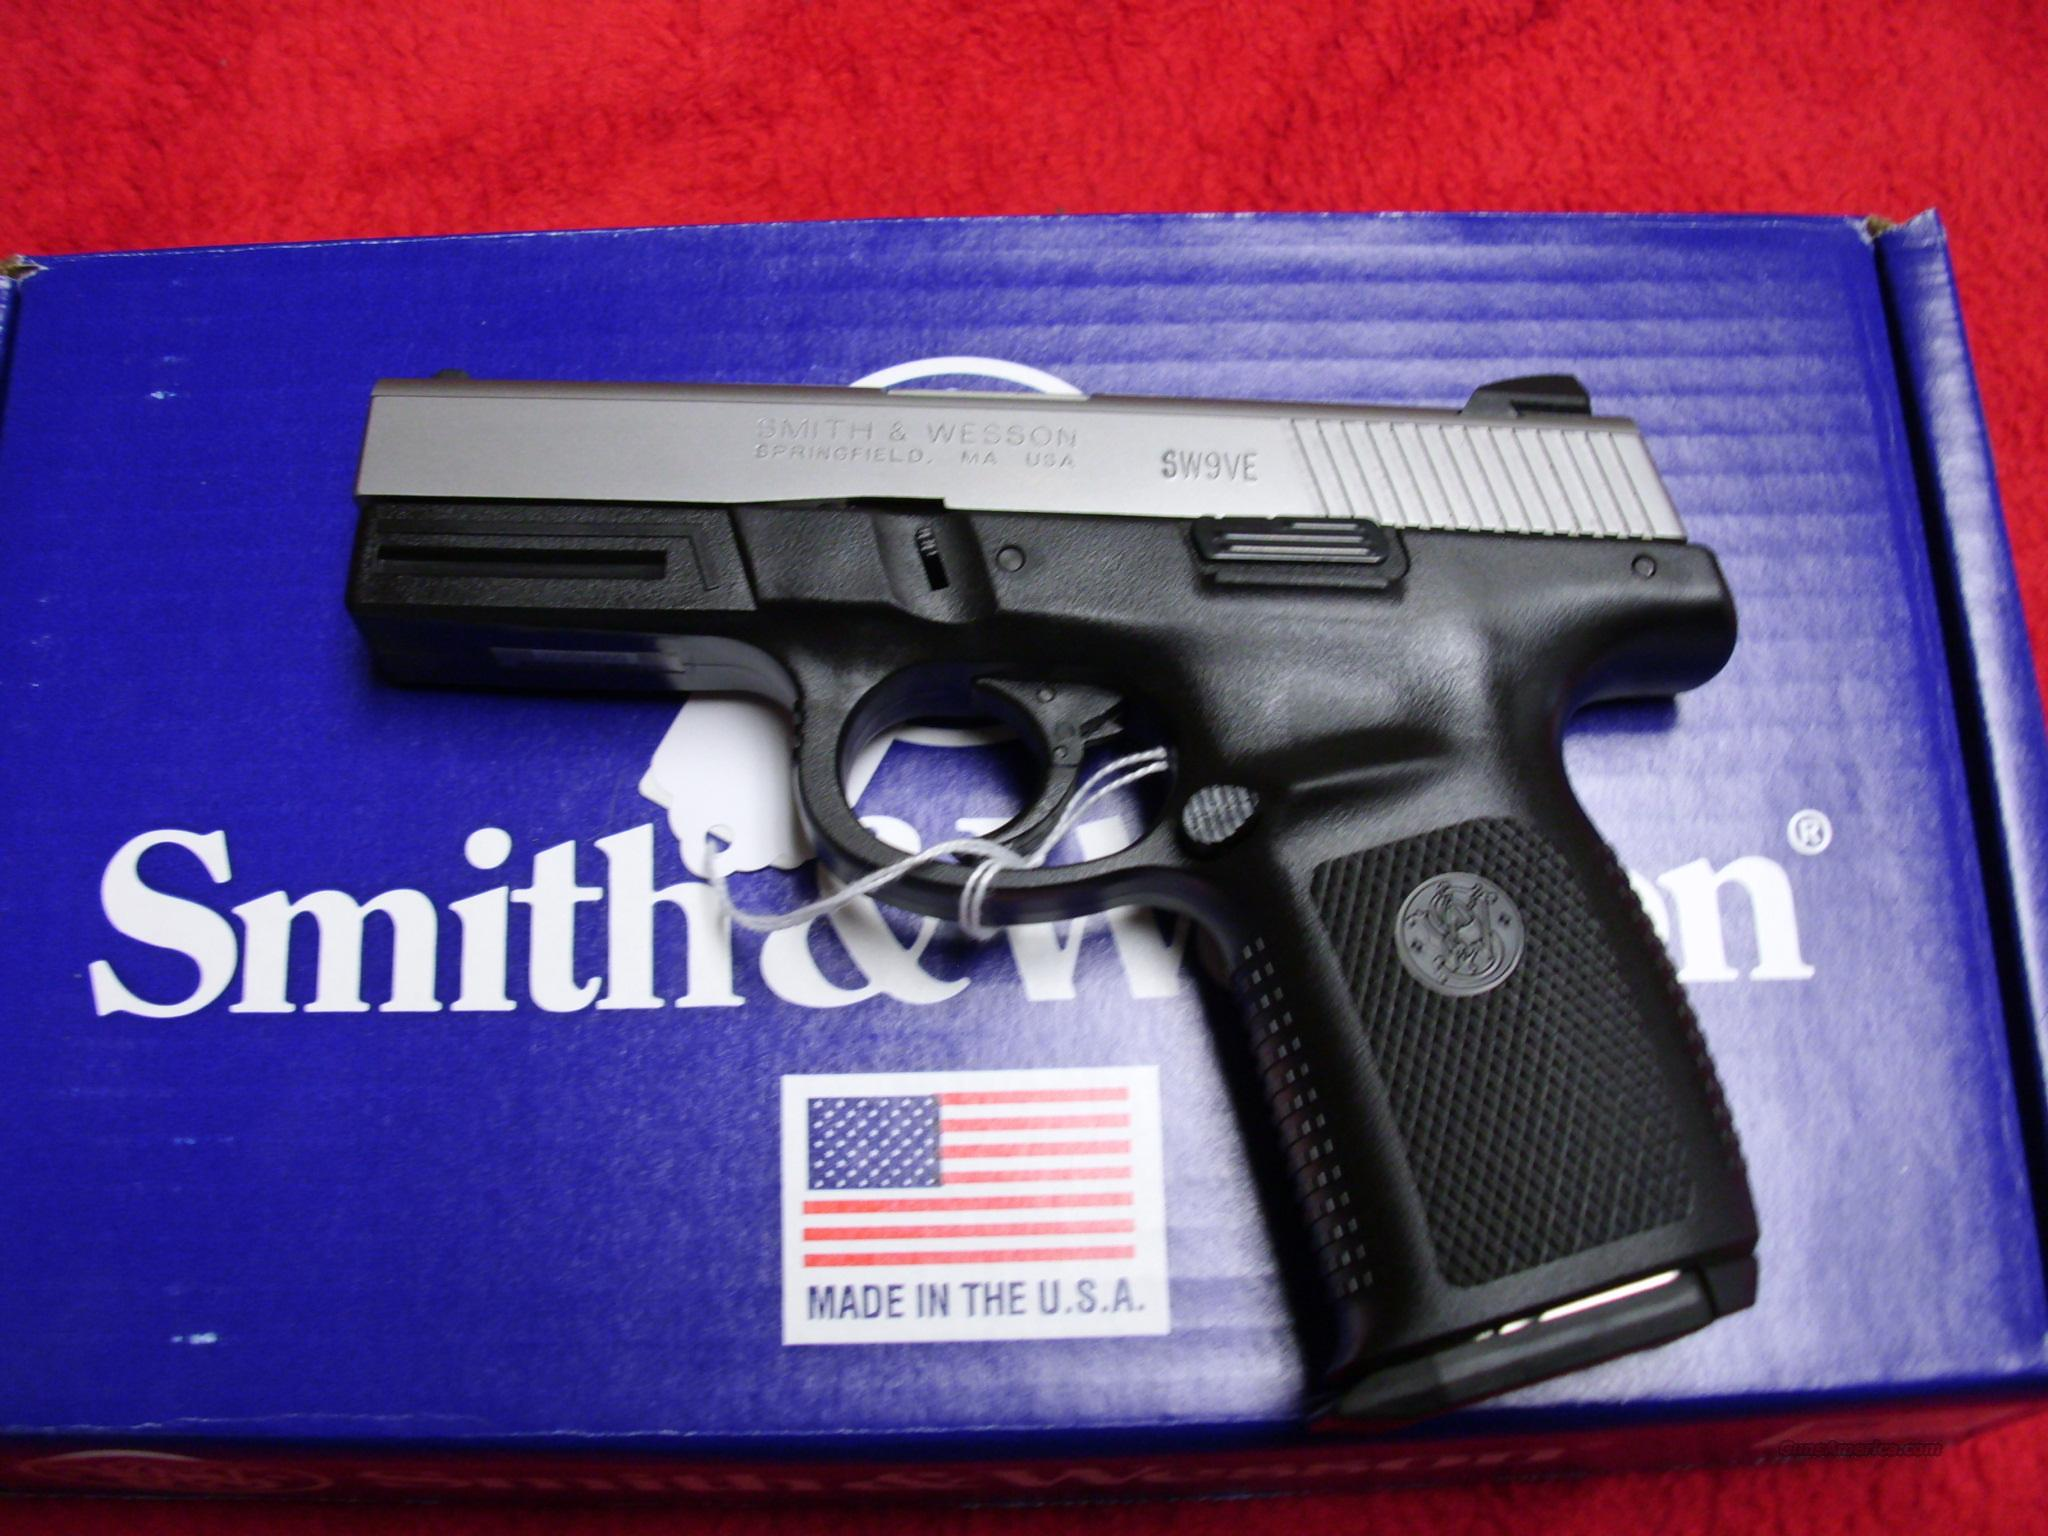 Smith & Wesson S&W SW9VE 9 mm NEW 9MM   Guns > Pistols > Smith & Wesson Pistols - Autos > Polymer Frame